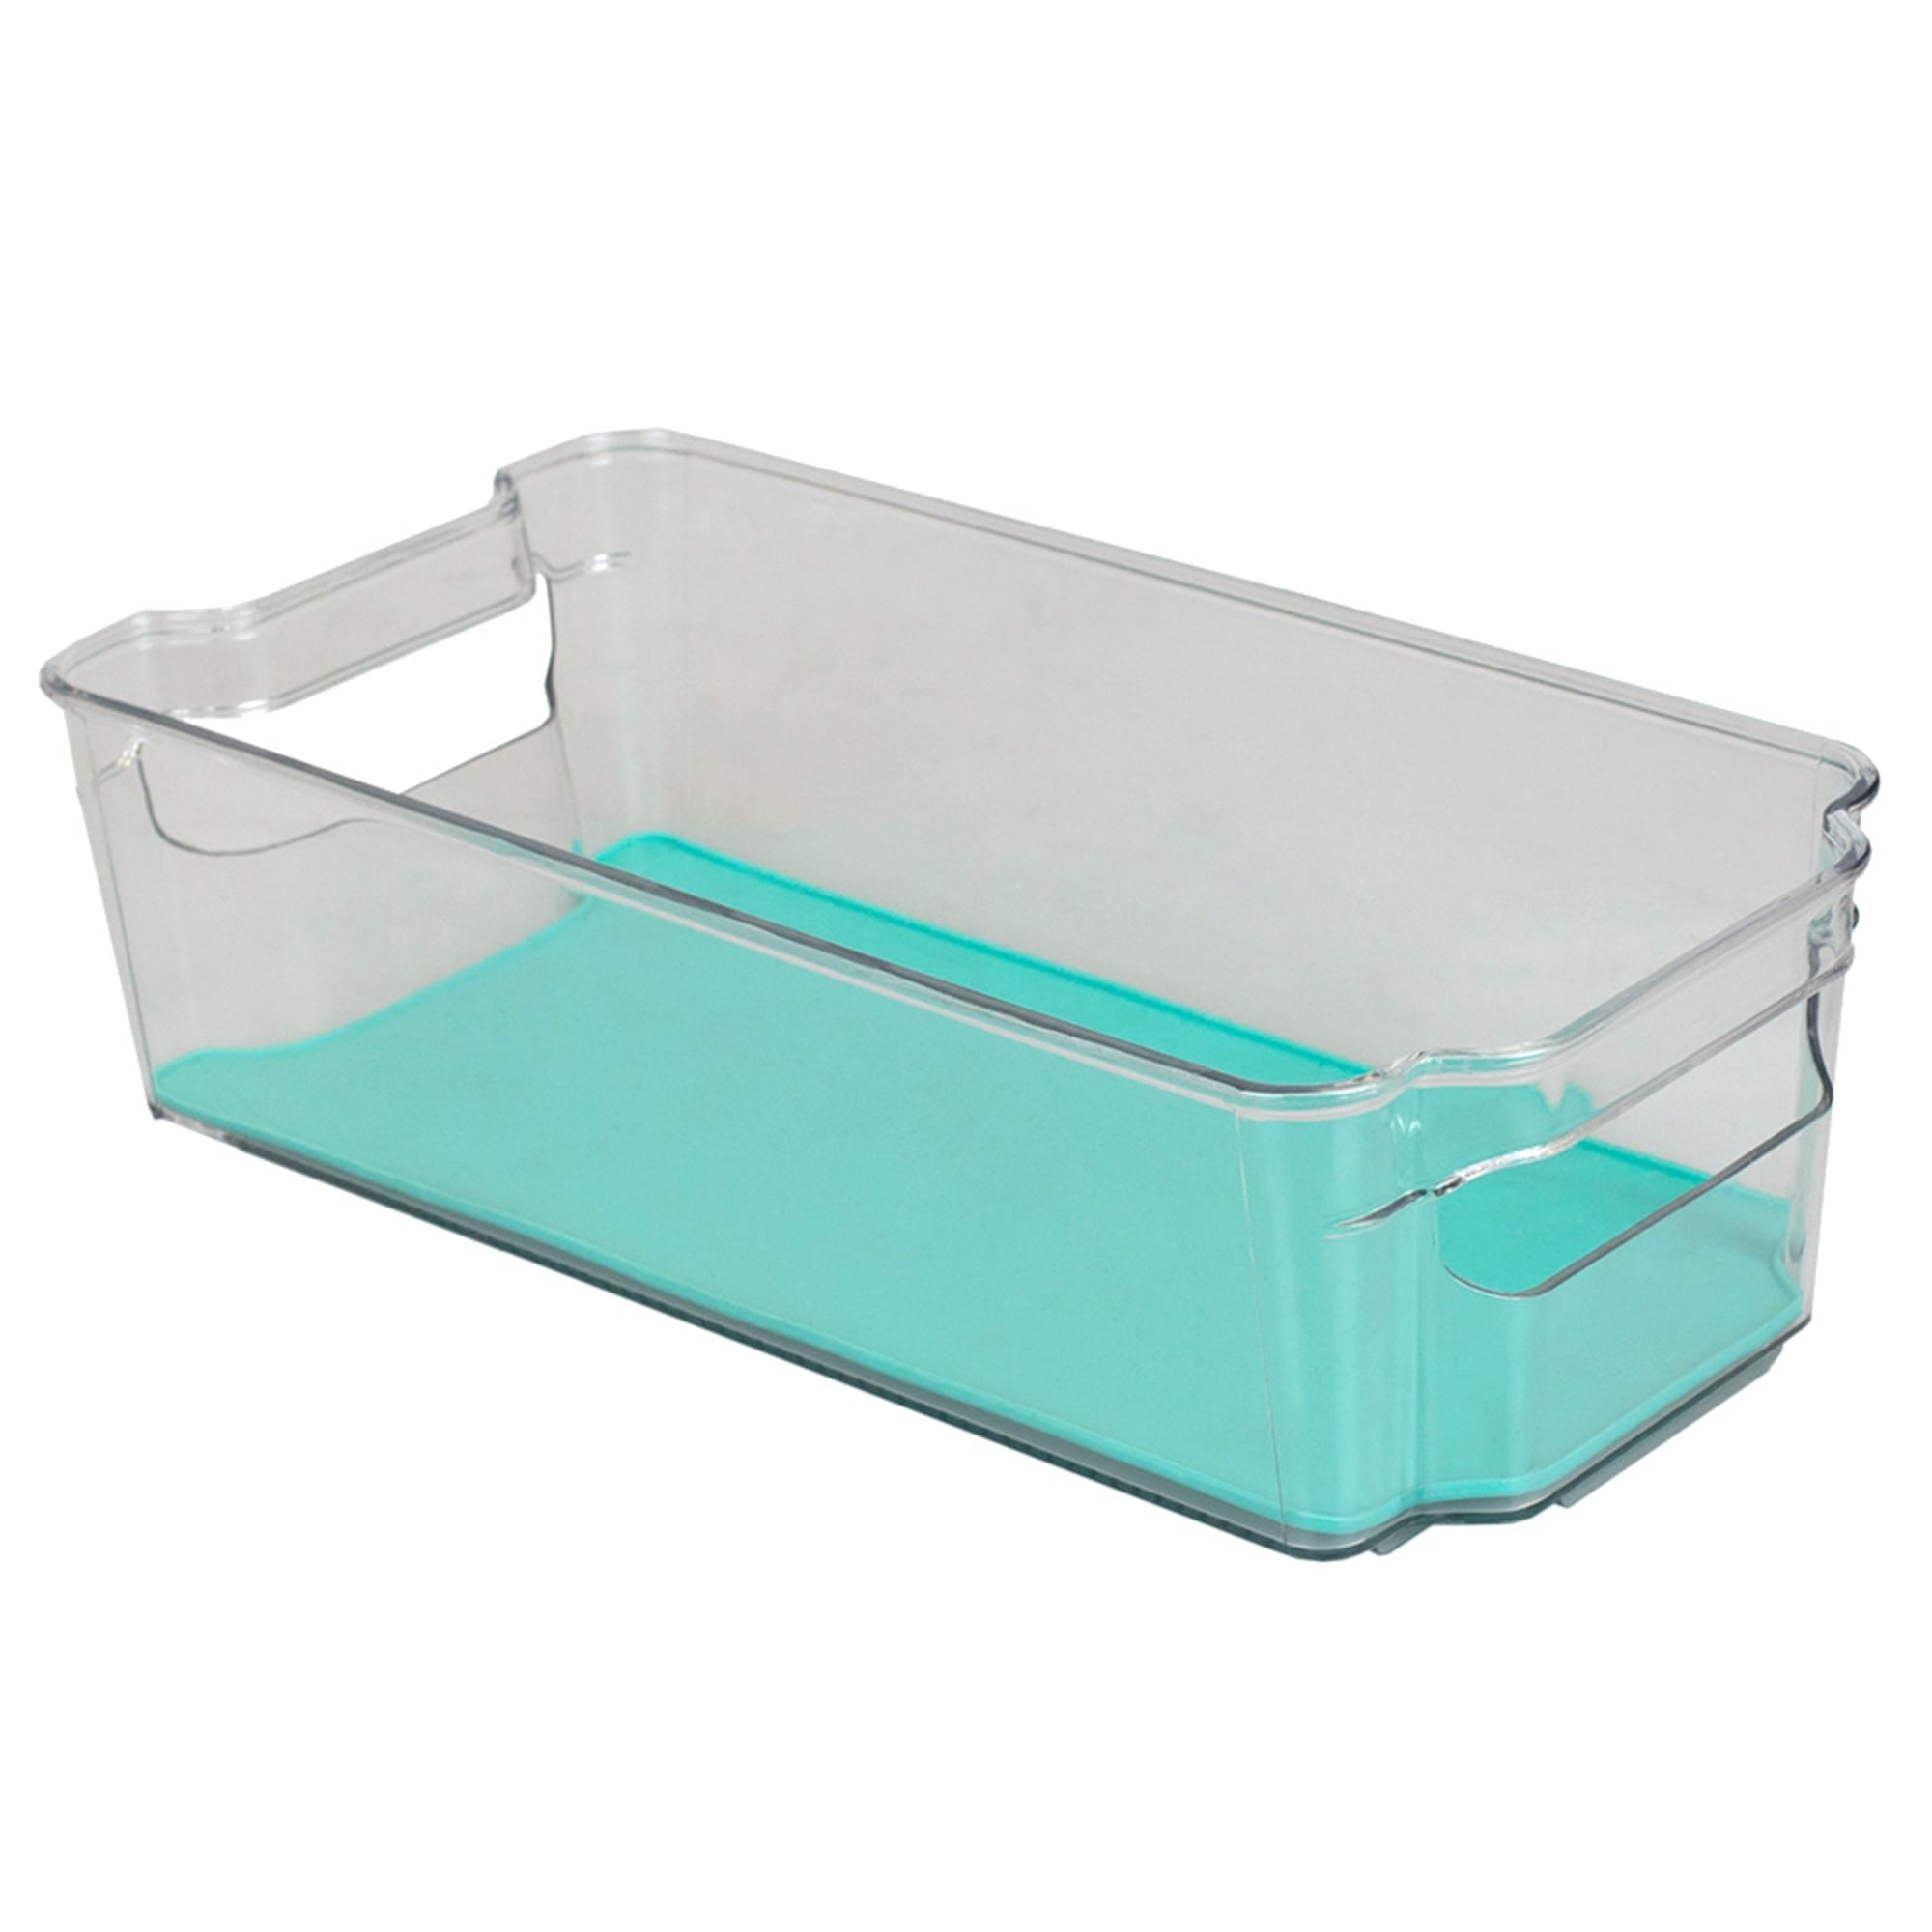 "6"" x 15"" Multi-Purpose Plastic Fridge Bin with Rubber Lining, Turquoise"